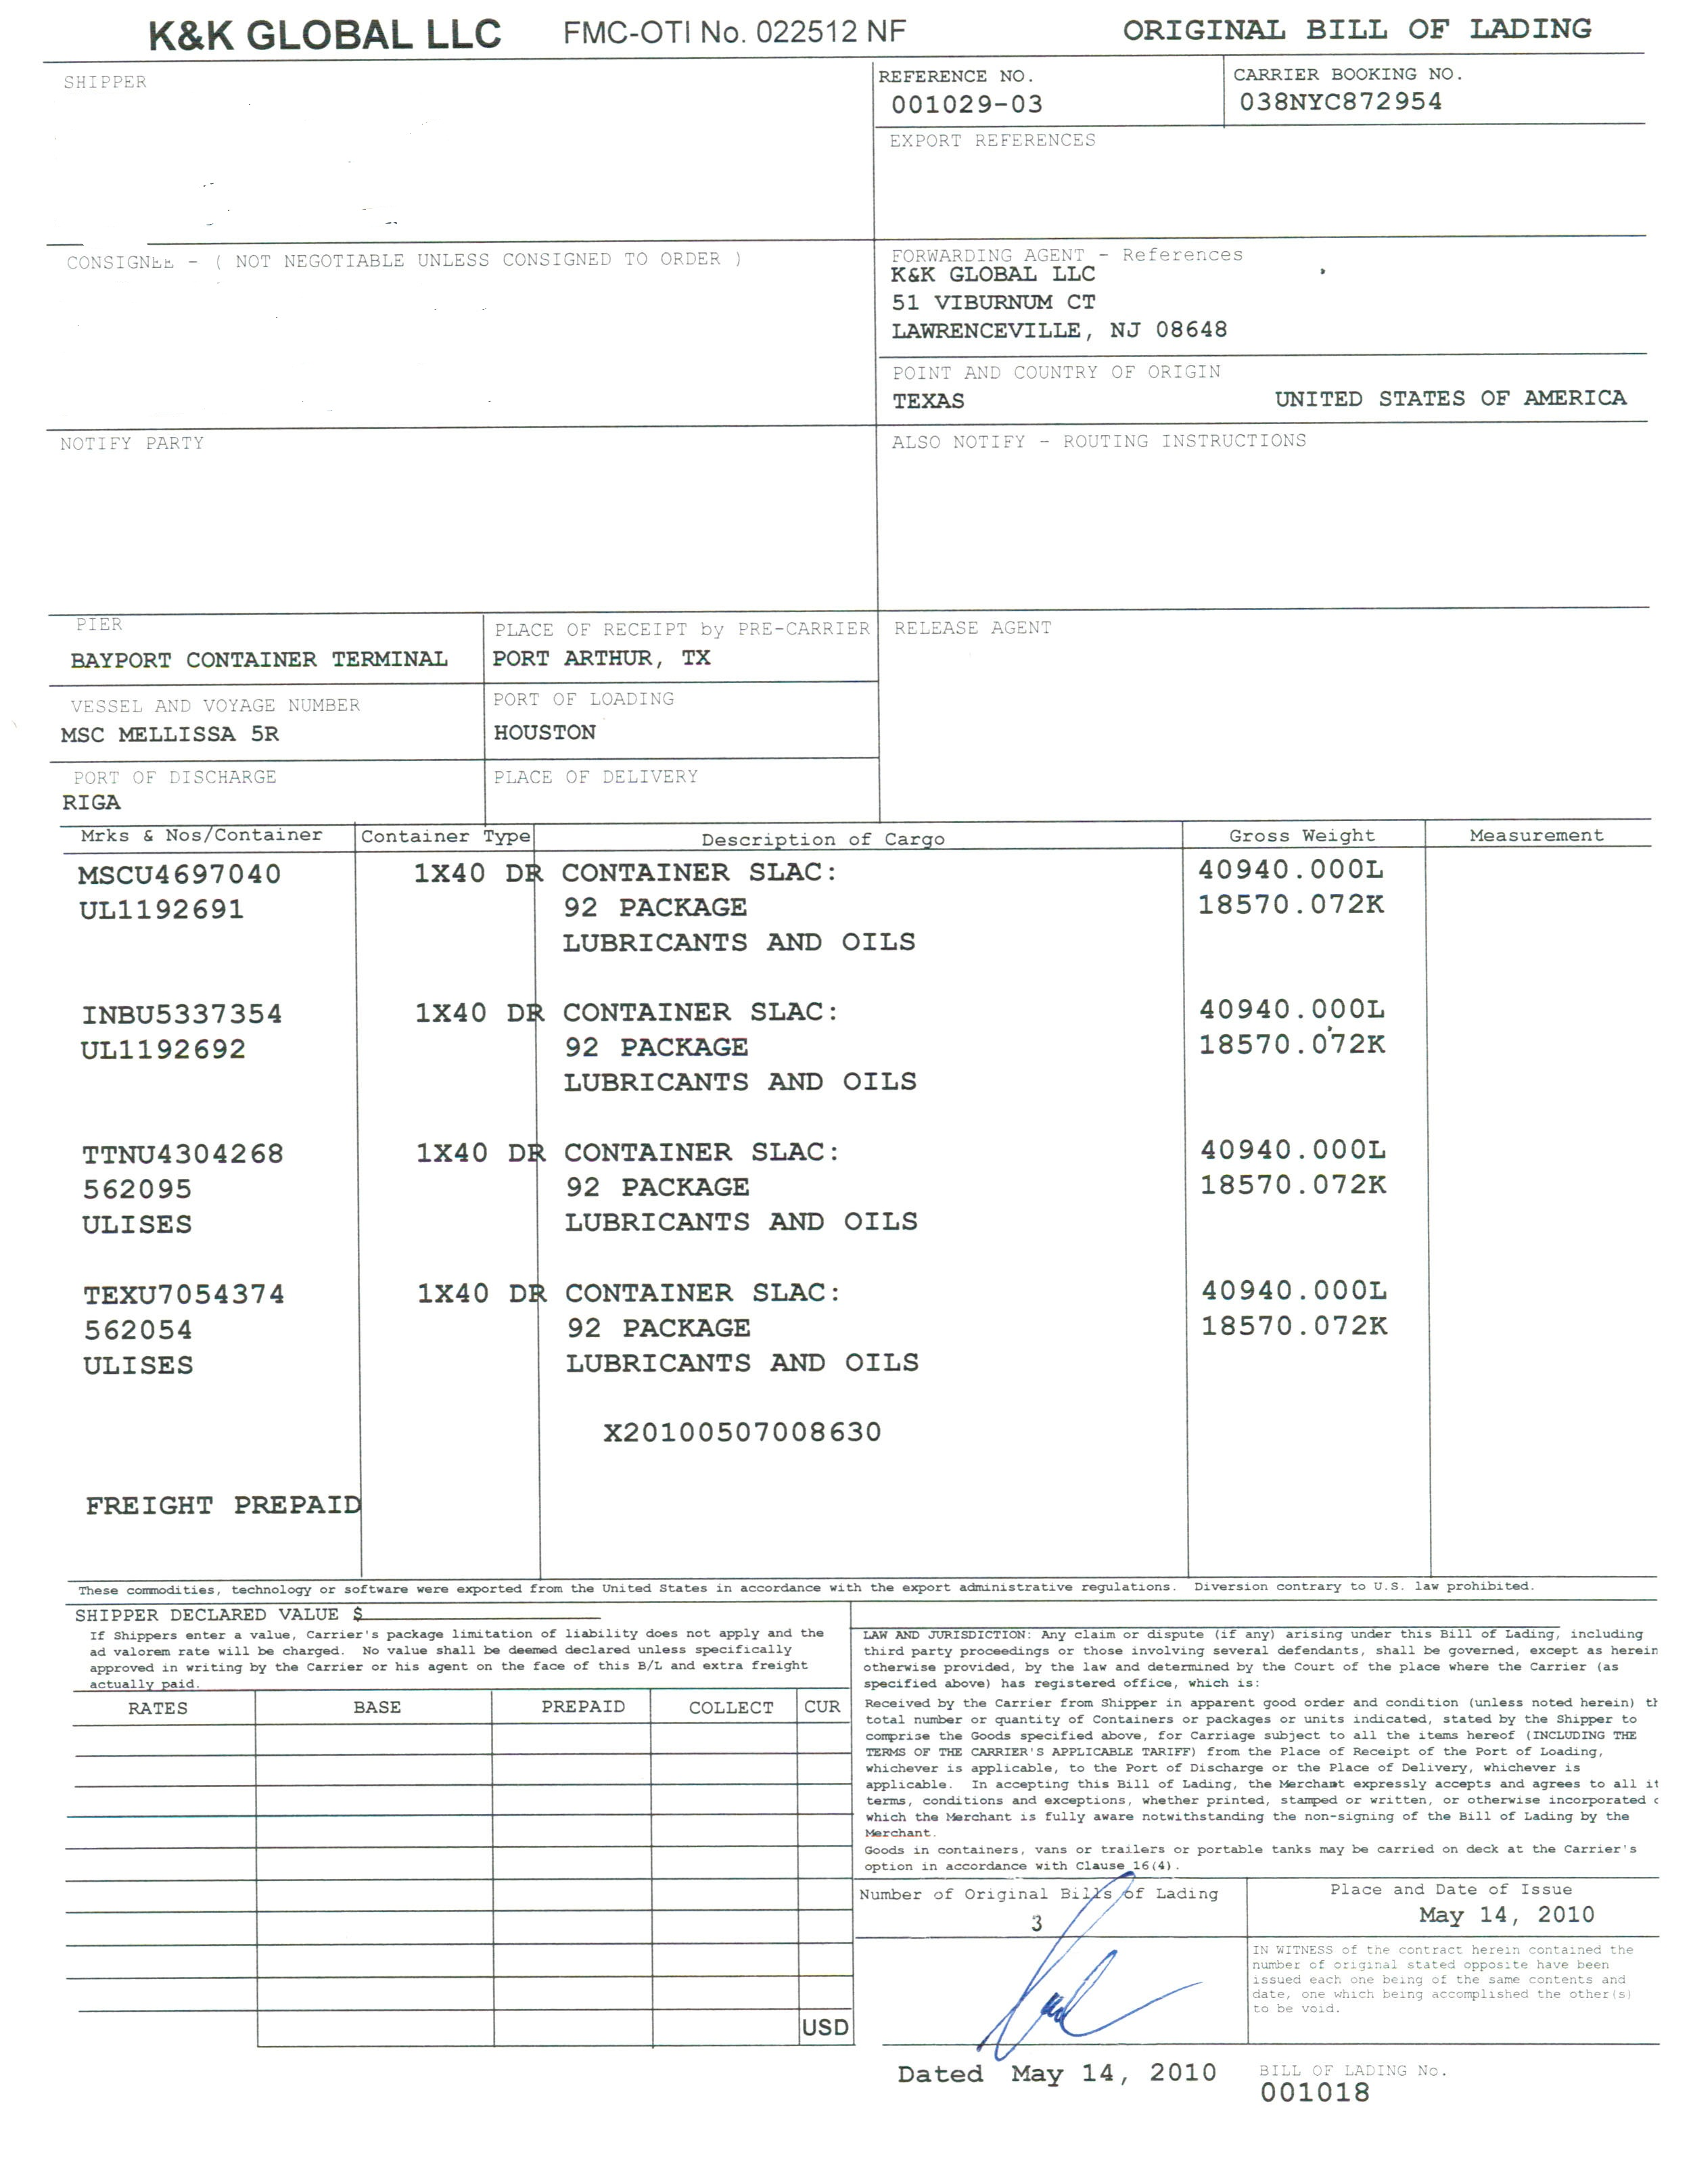 Bill of Lading – Sample of Bill of Lading Document